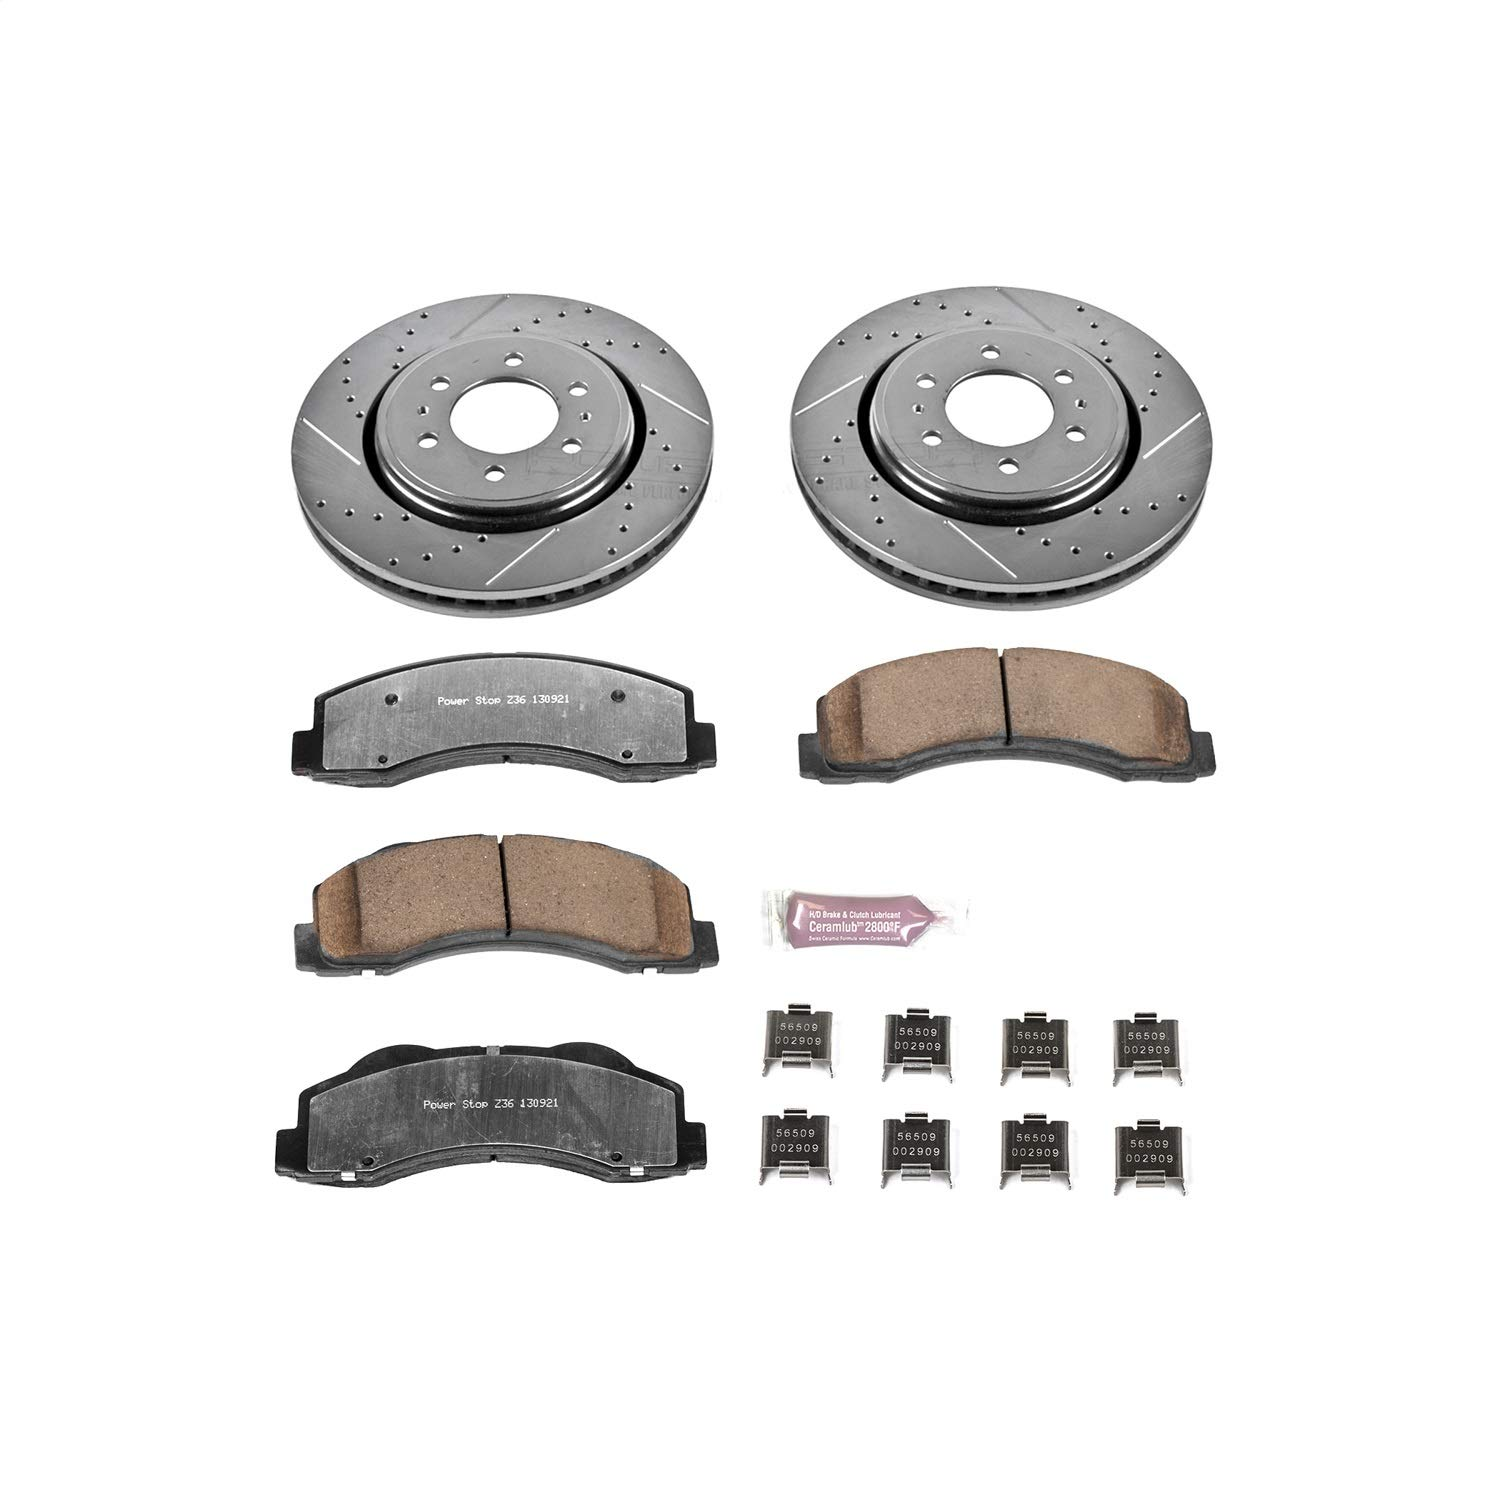 Power Stop K3167-36 Z36 Truck & Tow Front Brake Kit by POWERSTOP